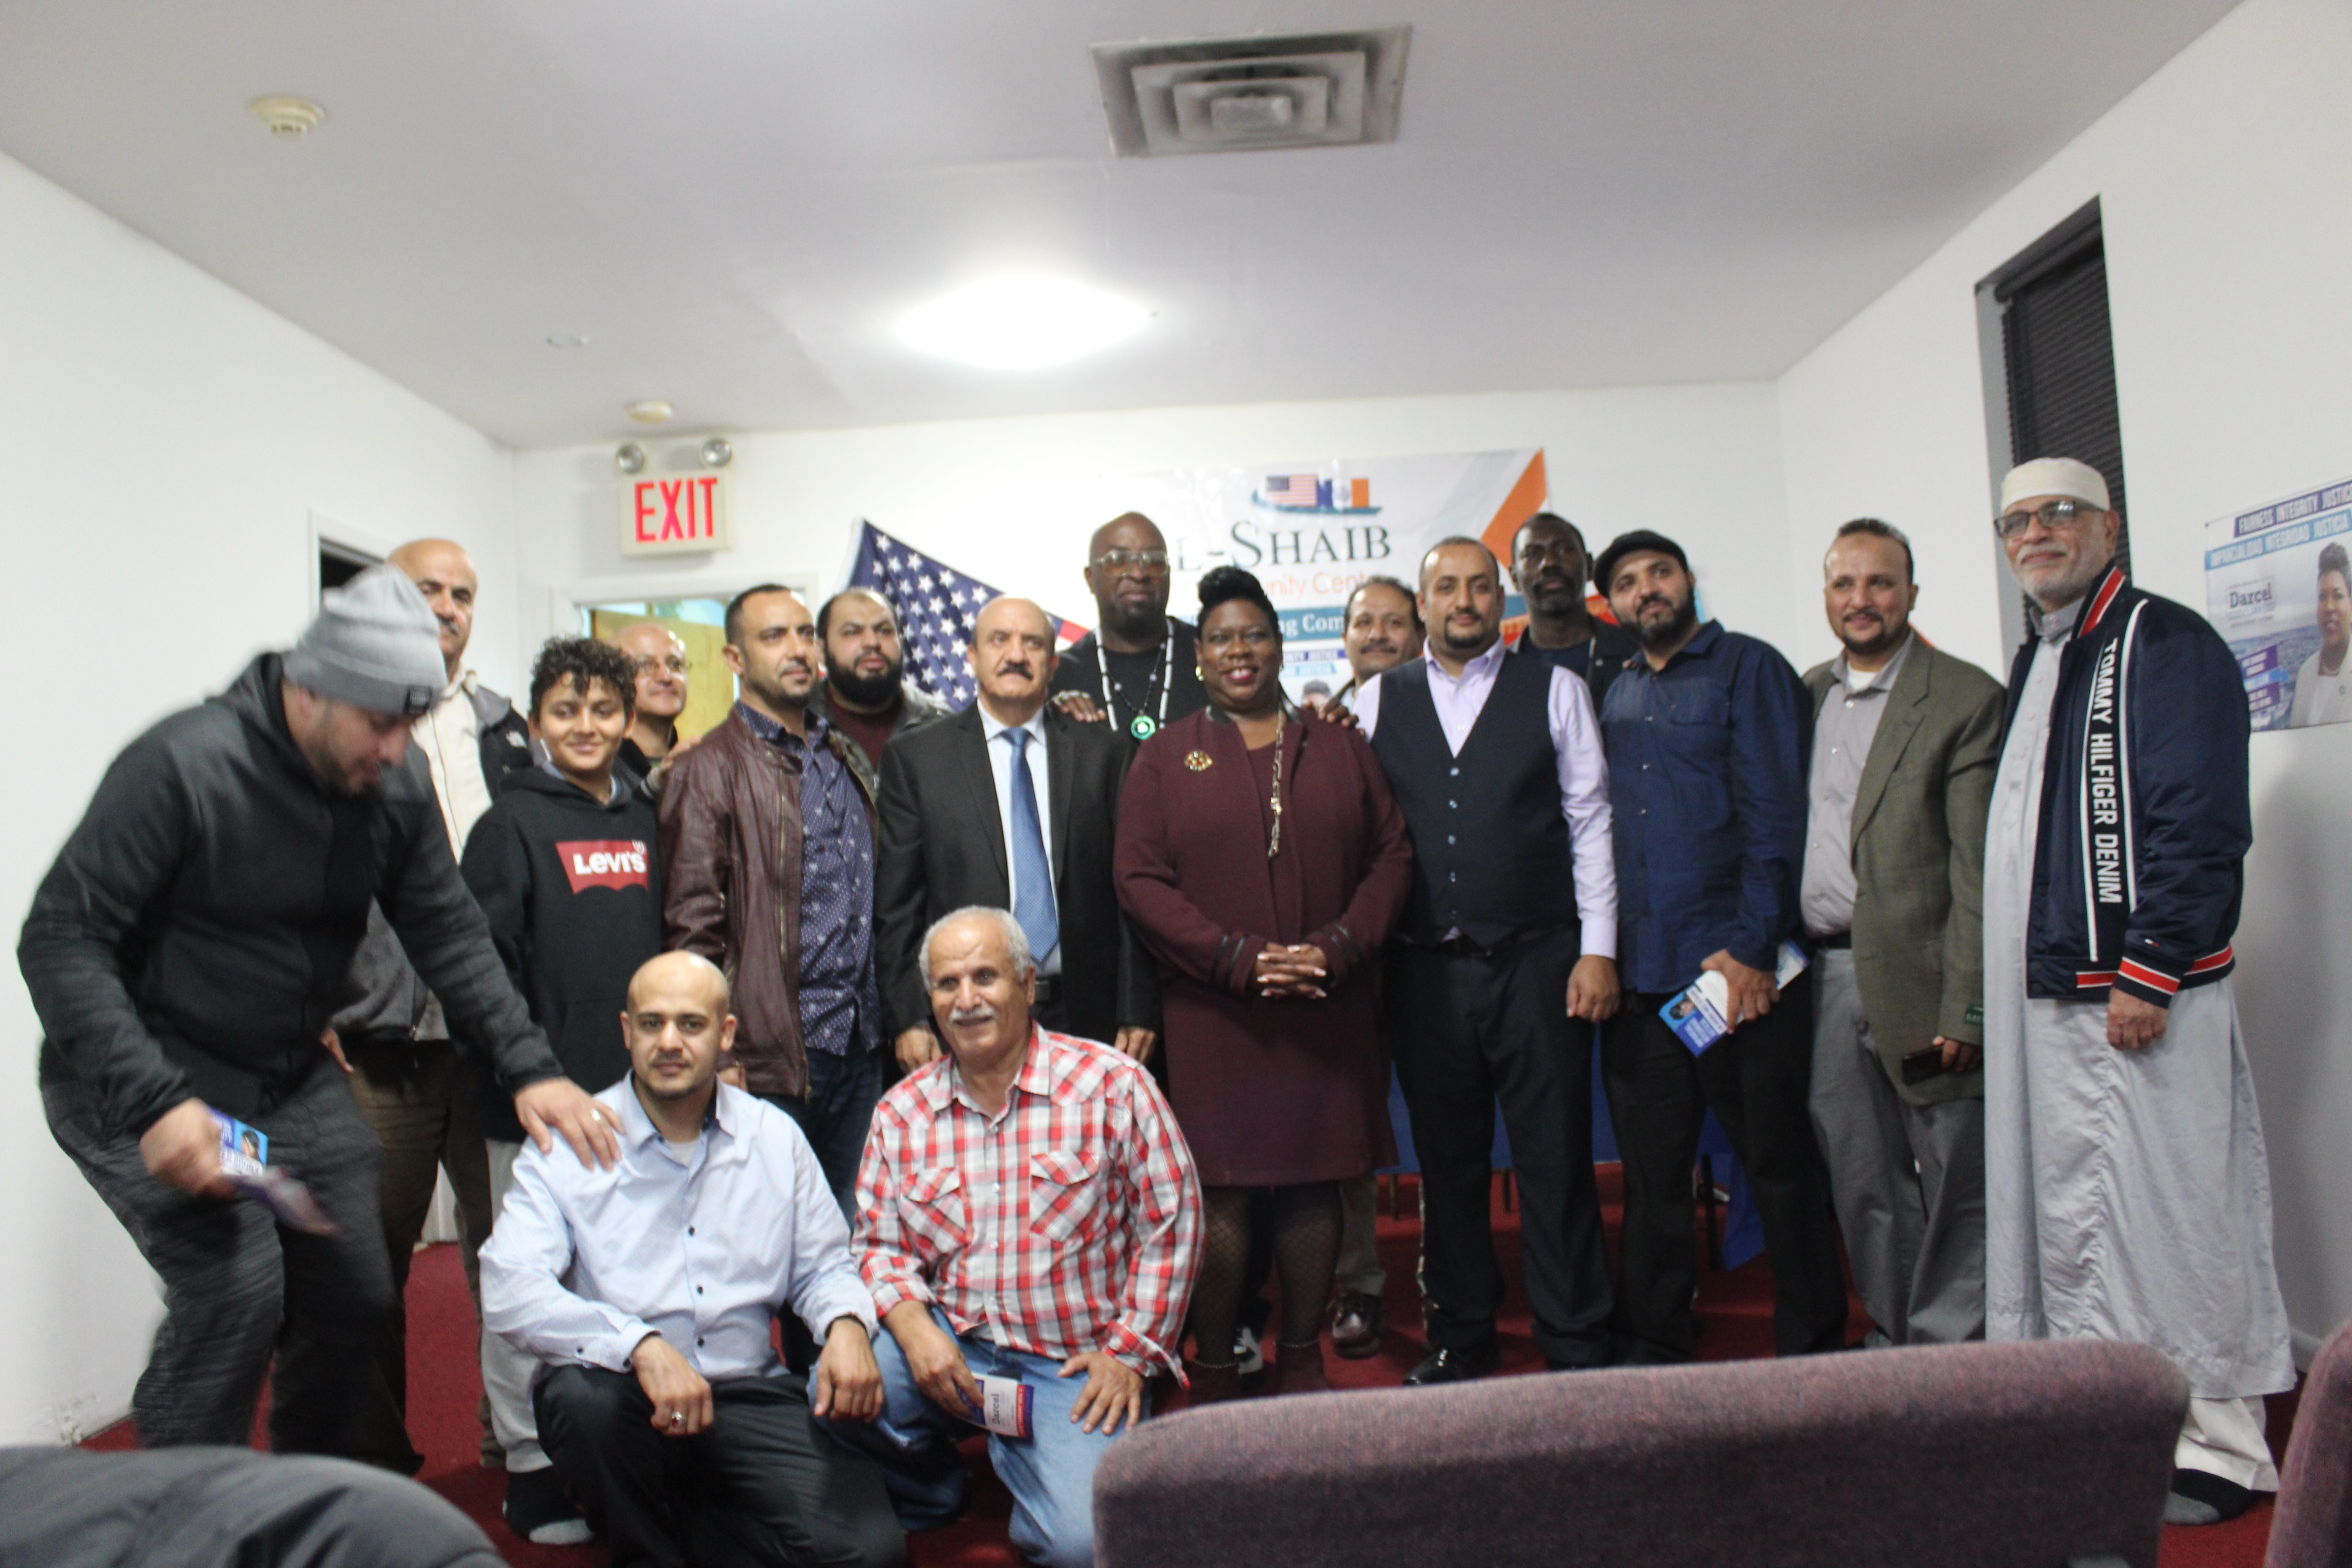 Community peace Diner in the Bronx: The talk about safety with the Bronx County District Attorney Darcel Clark